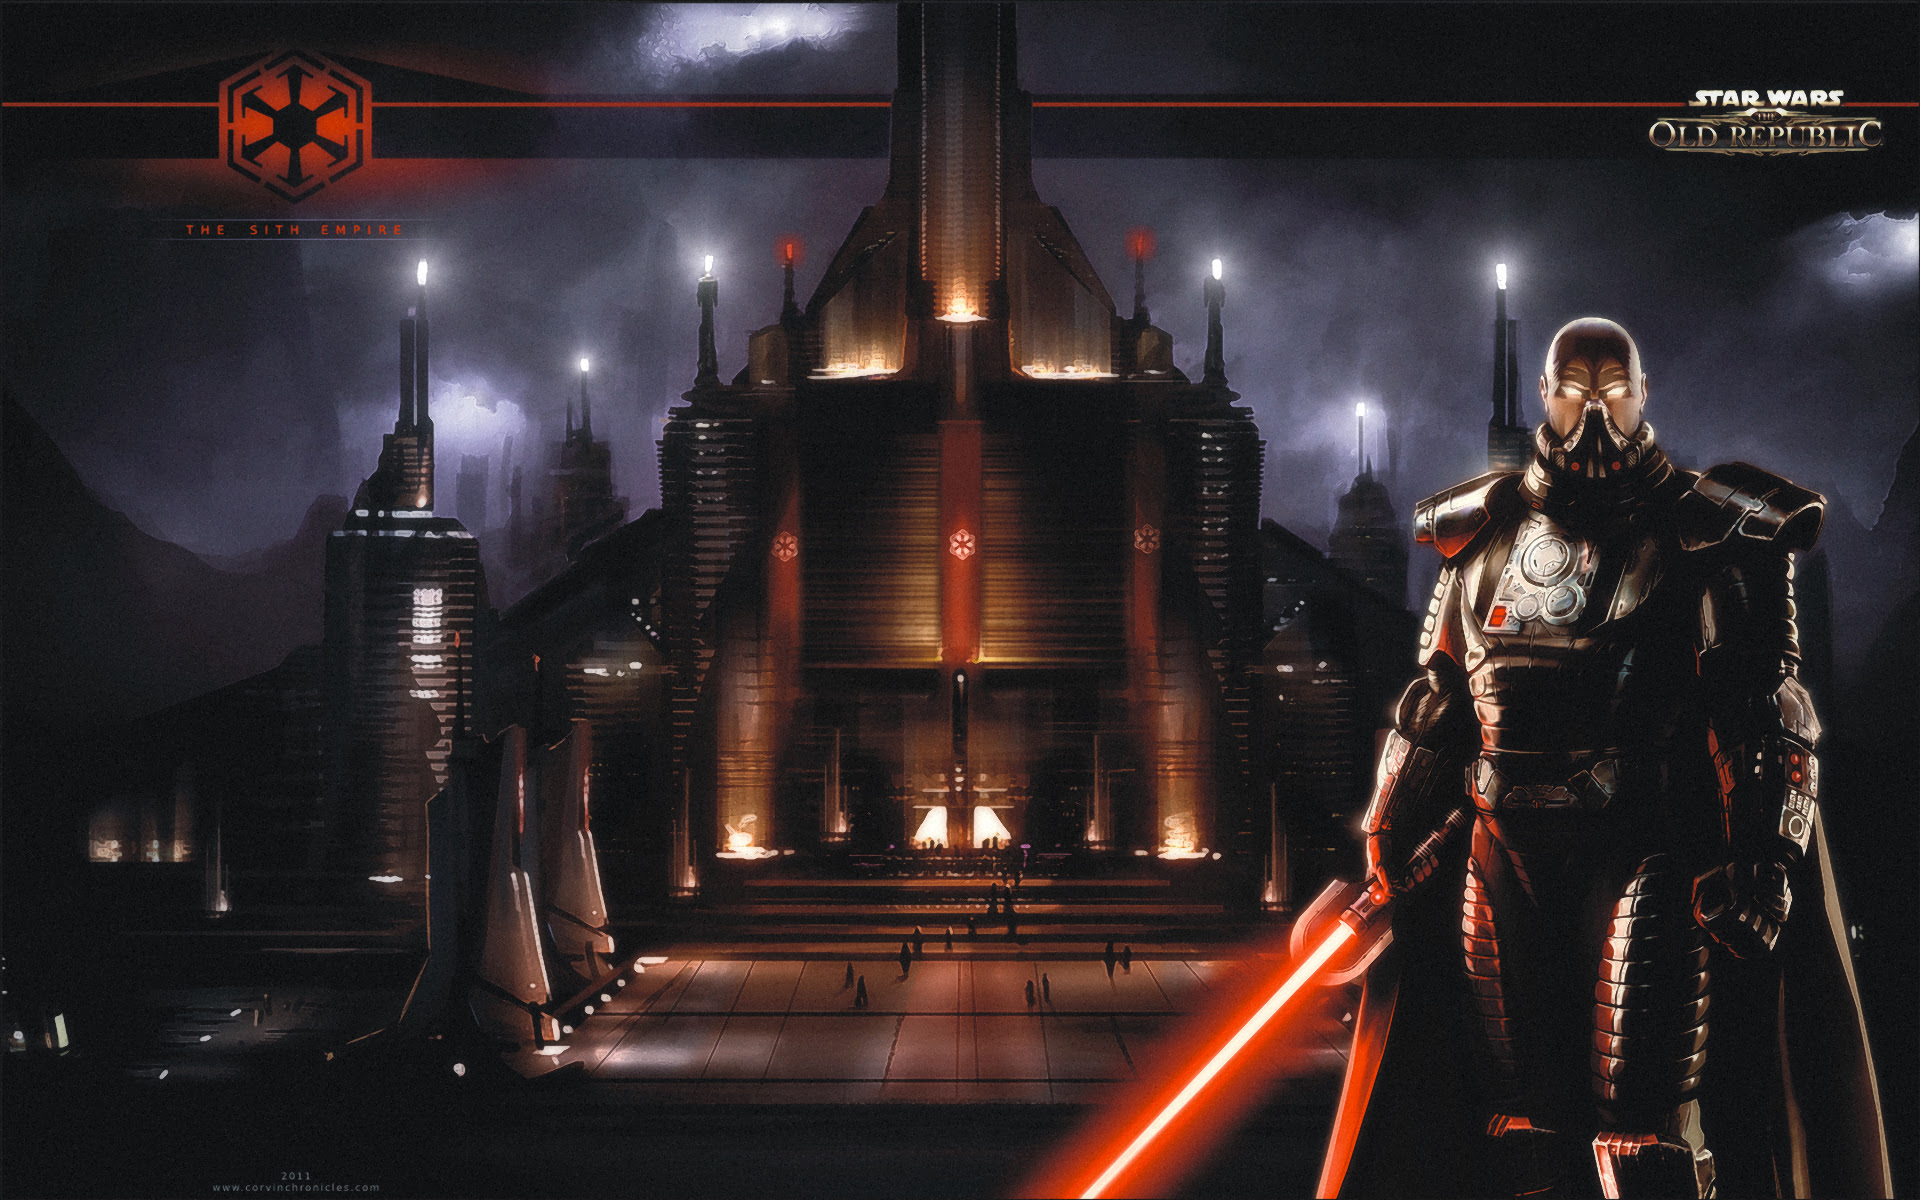 Star Wars The Old Republic Sith Republic Wallpapers